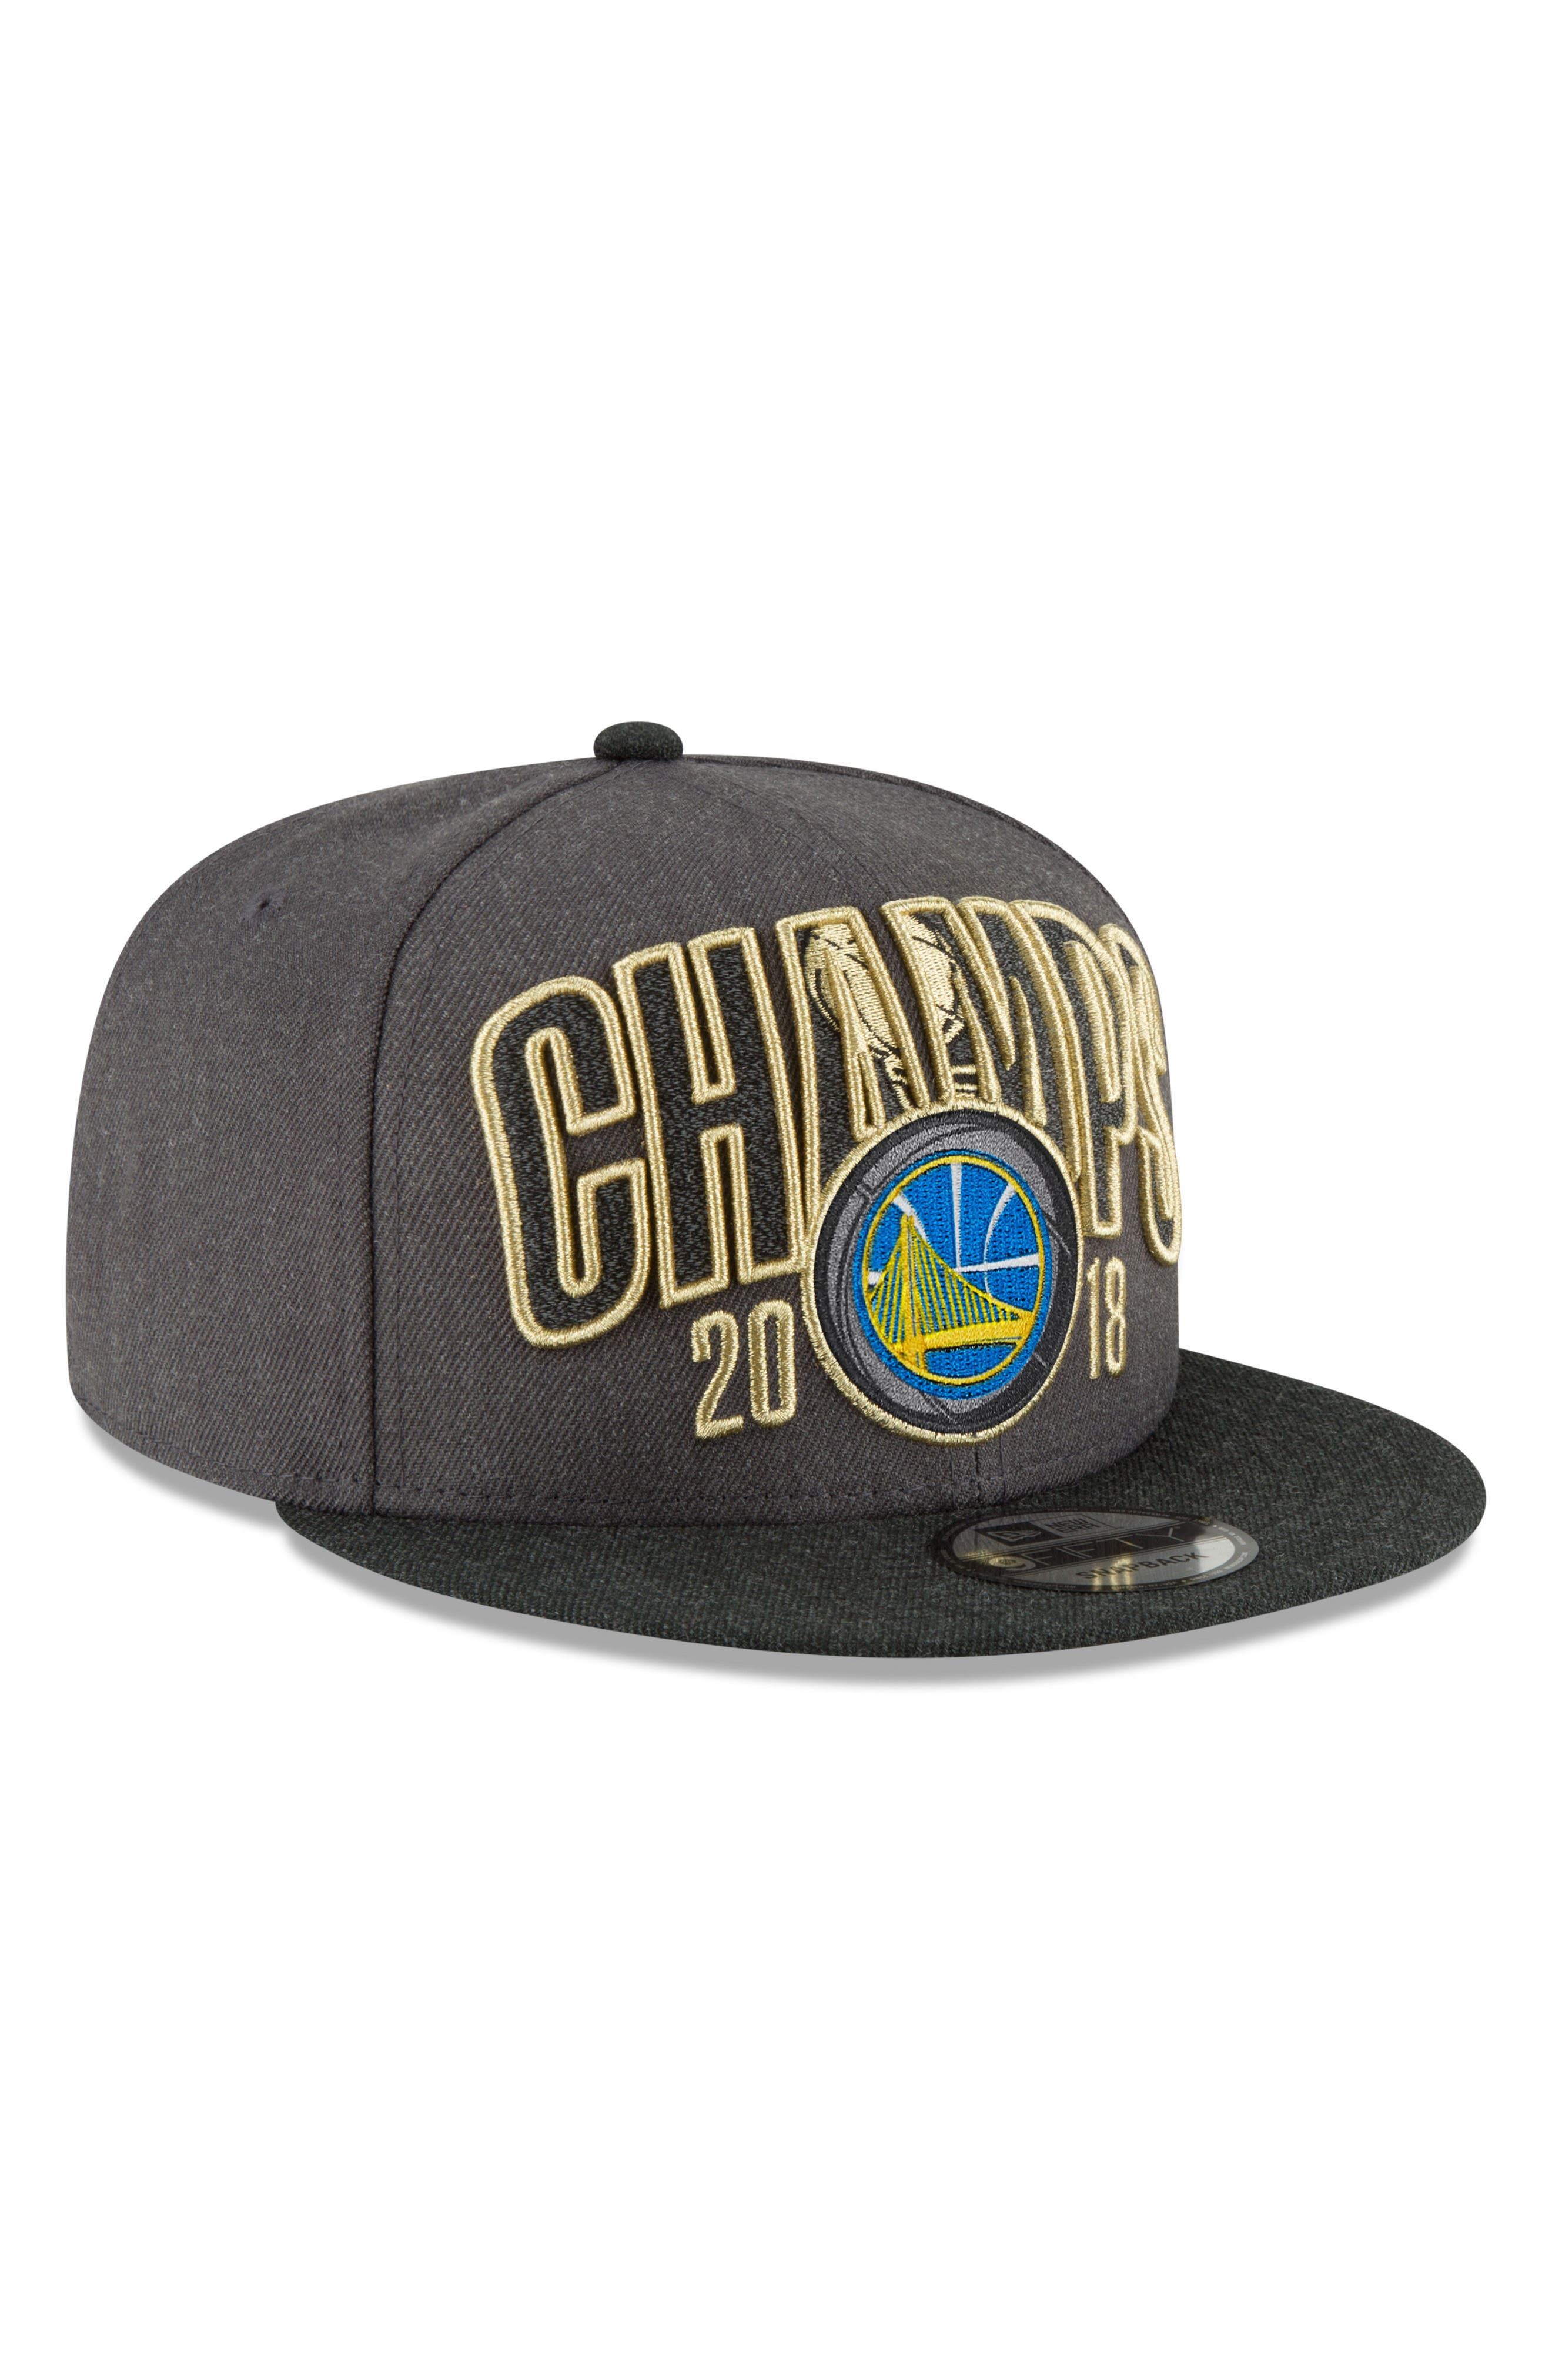 2018 NBA Champions - Golden State Warriors 9Fifty Snapback Cap,                         Main,                         color, 030